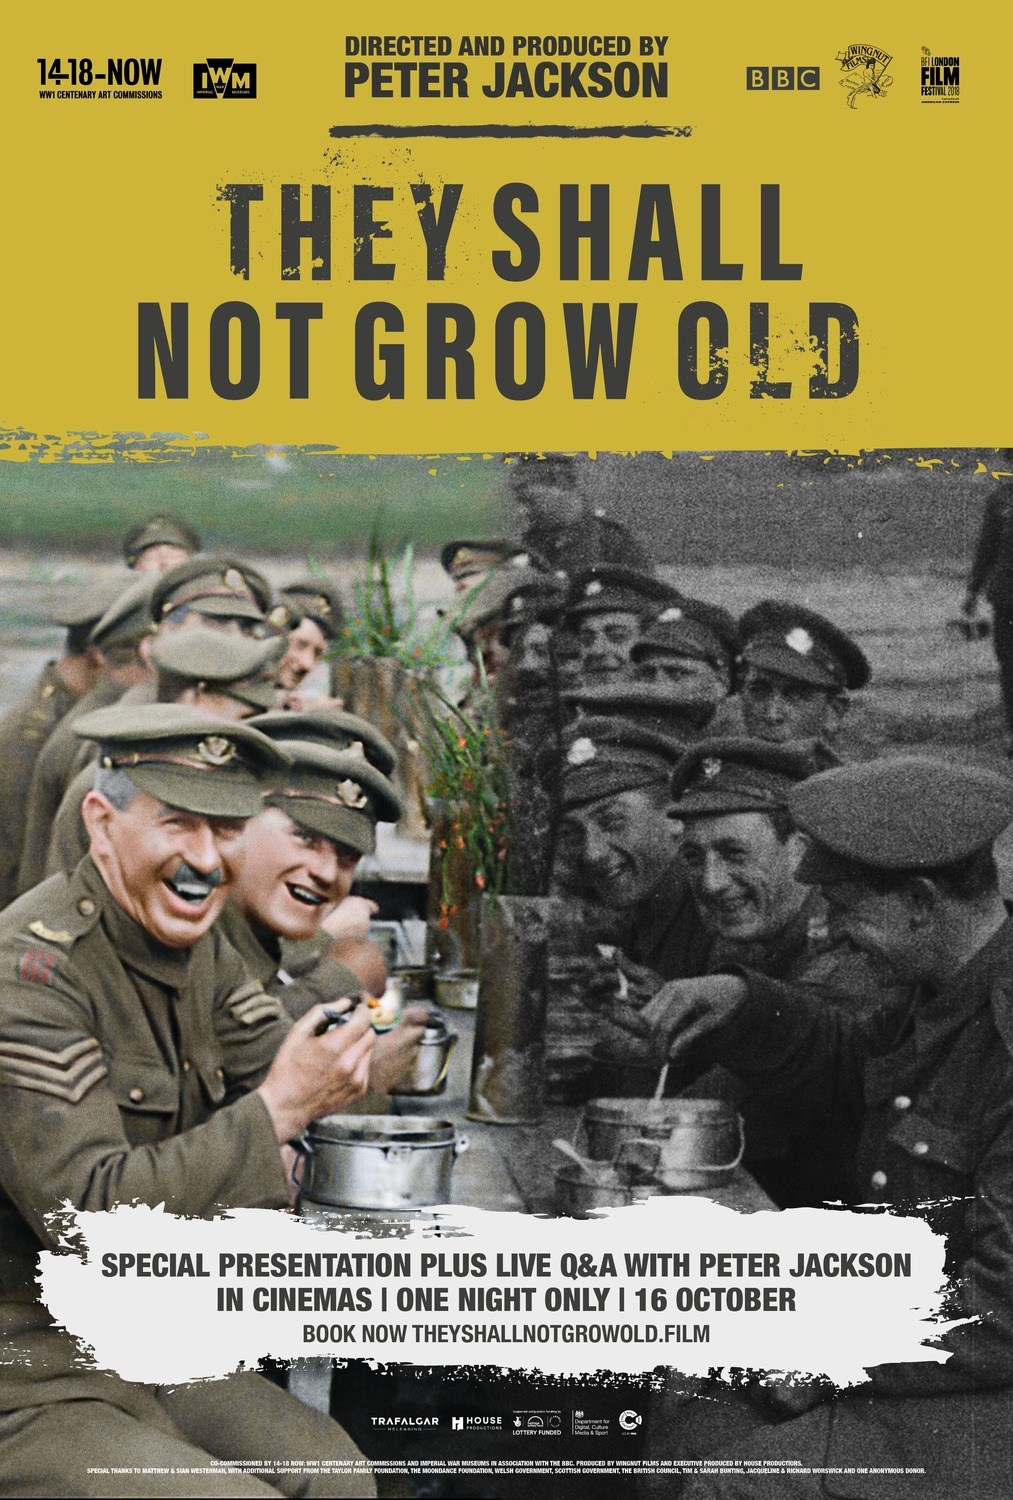 They Shall Not Grow Old (2019) - Directed by: Peter JacksonStarring: -Rated: R for Graphic War ImagesRunning Time: 1h 39mTMM Score: 5 StarsSTRENGTHS: EverythingWEAKNESSES: -